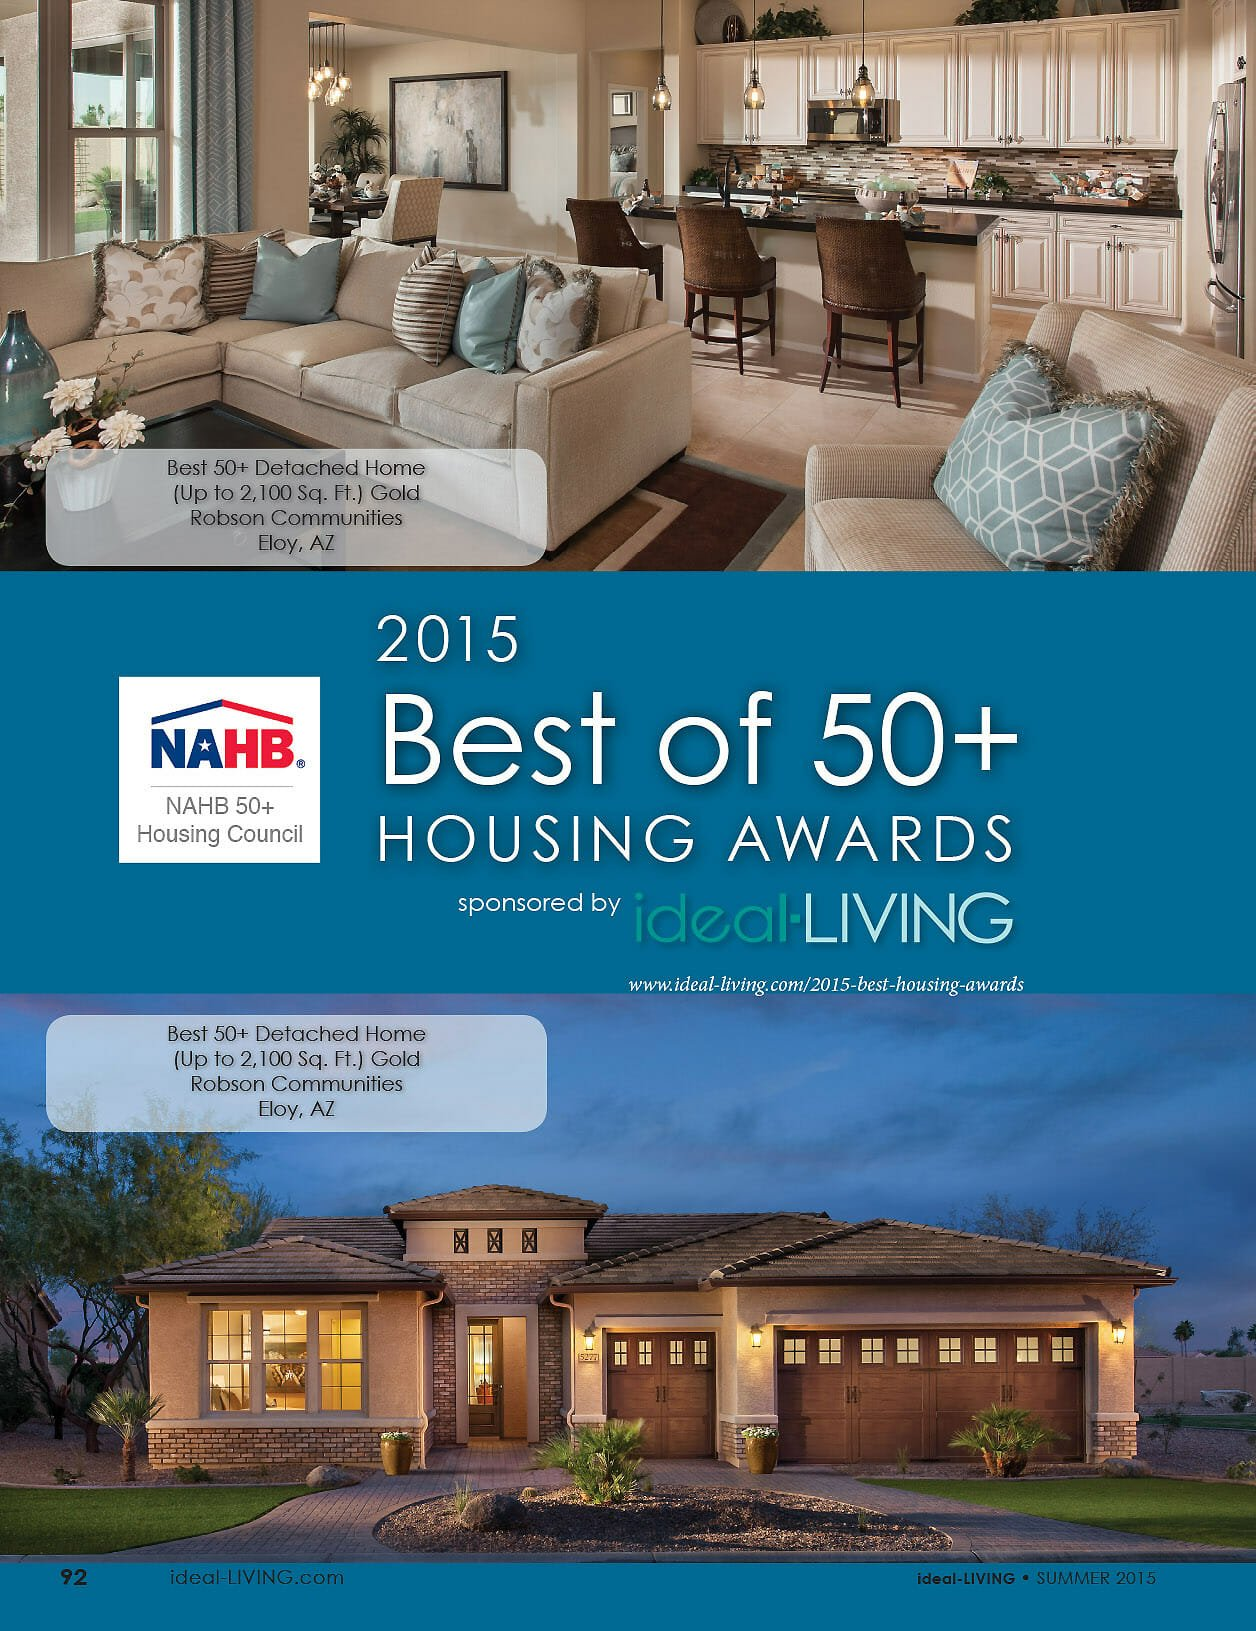 2015 best of 50+ housing awards NAHB